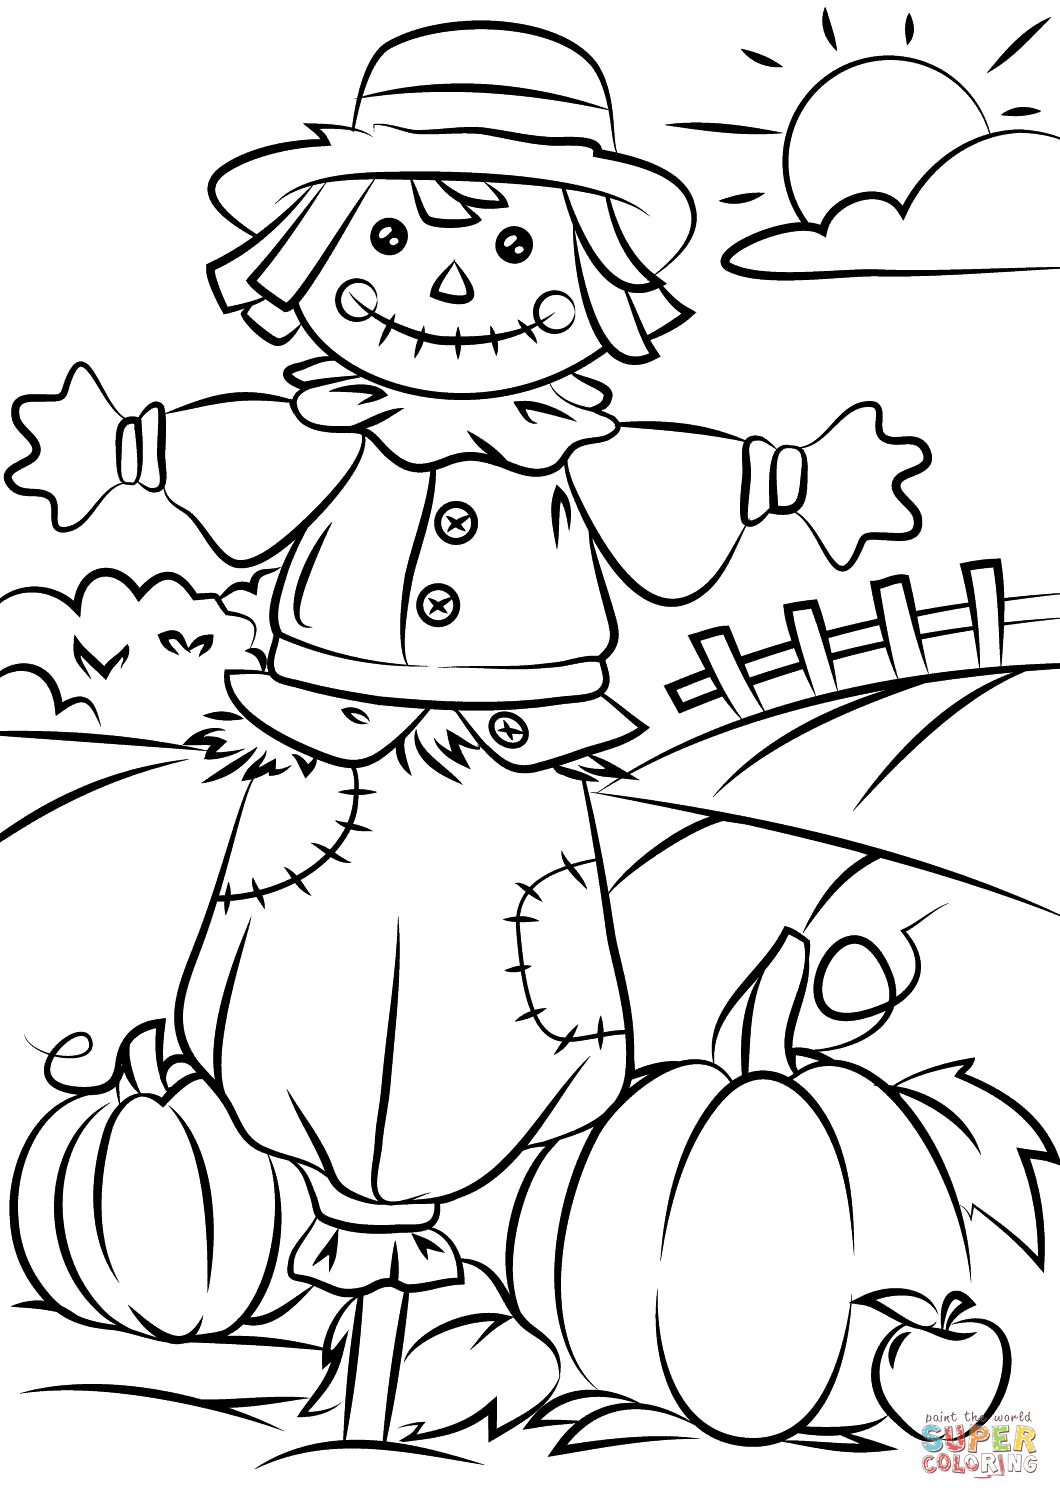 Autumn Scene With Scarecrow Coloring Page | Free Printable Coloring - Fall Printable Coloring Pages Free